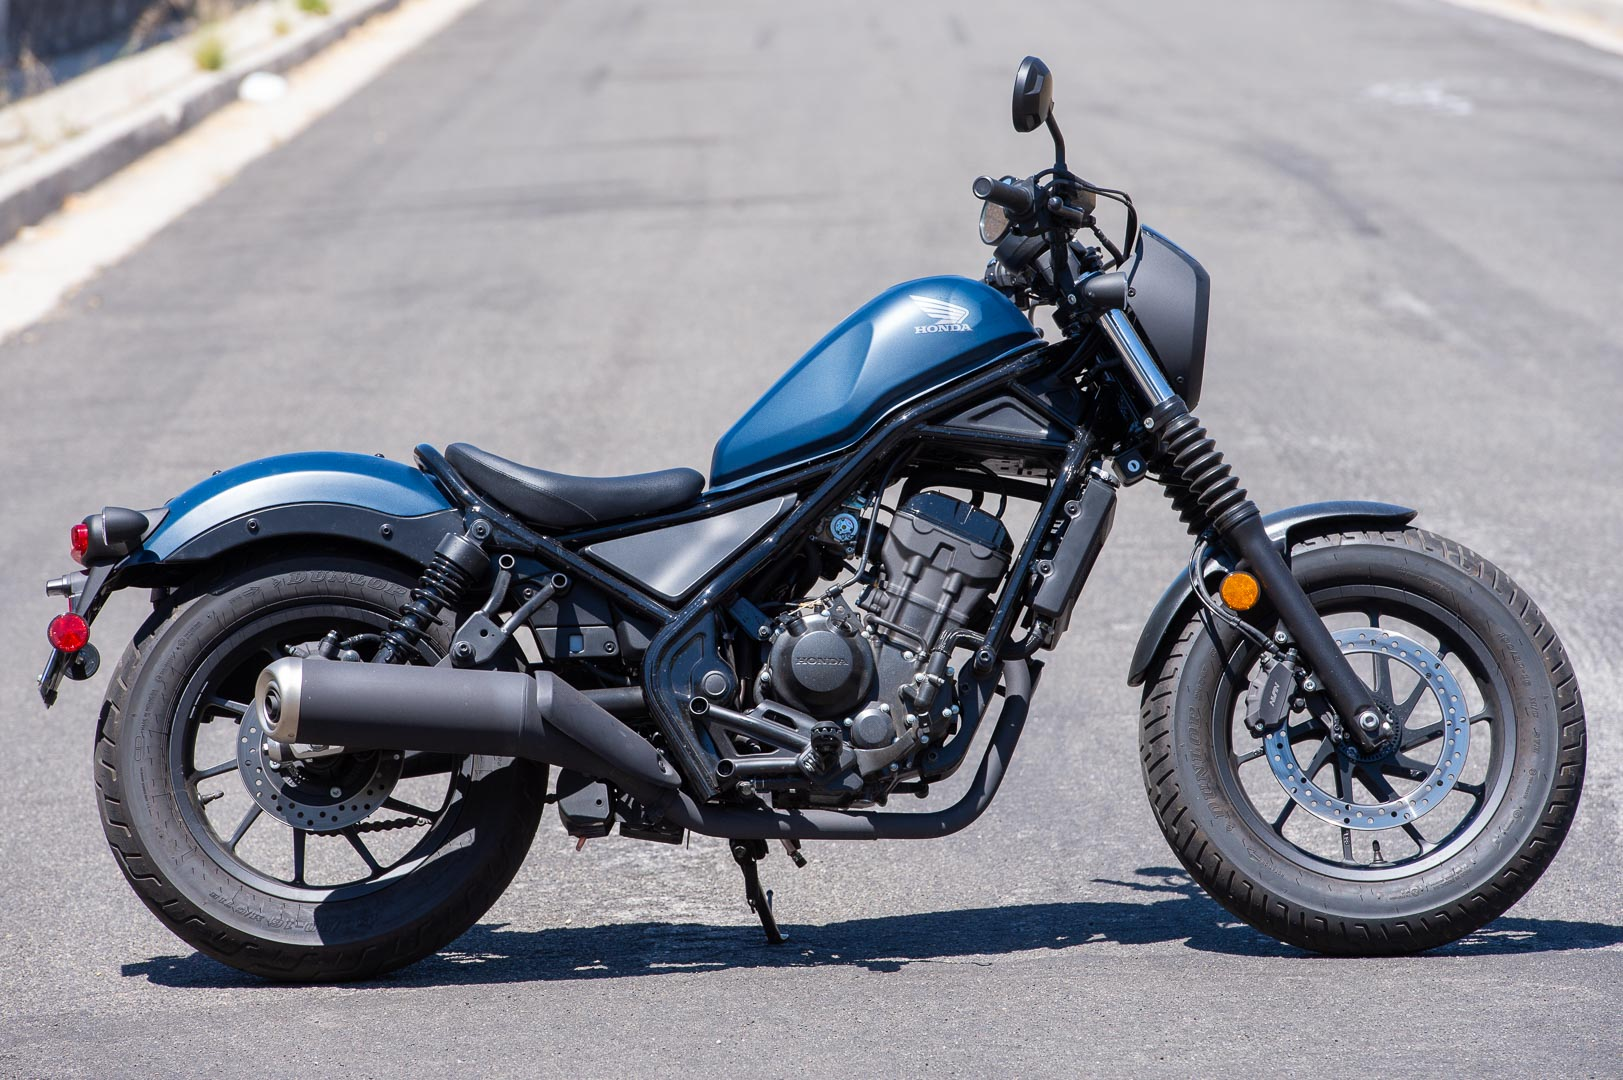 2020 Honda Rebel 300 Review - Price